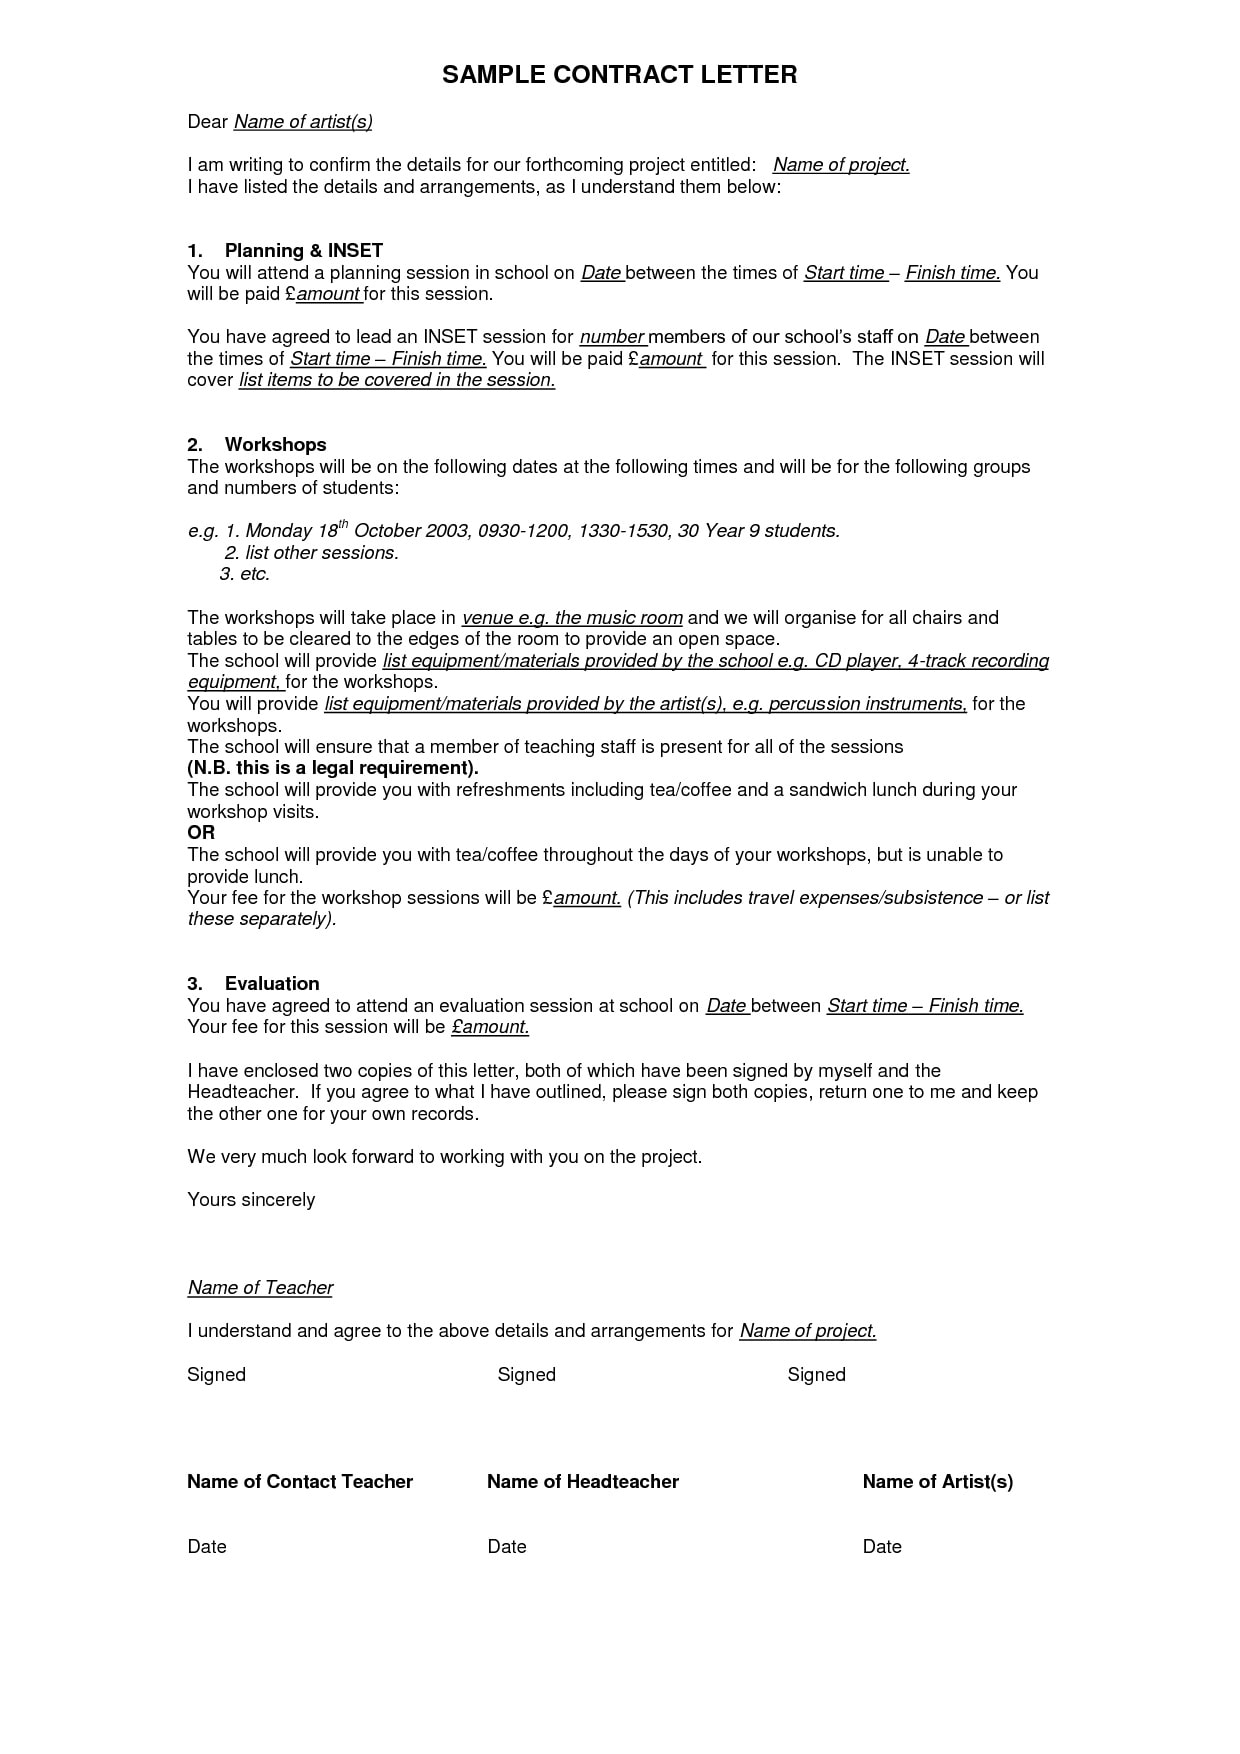 professional contract agreement letter example